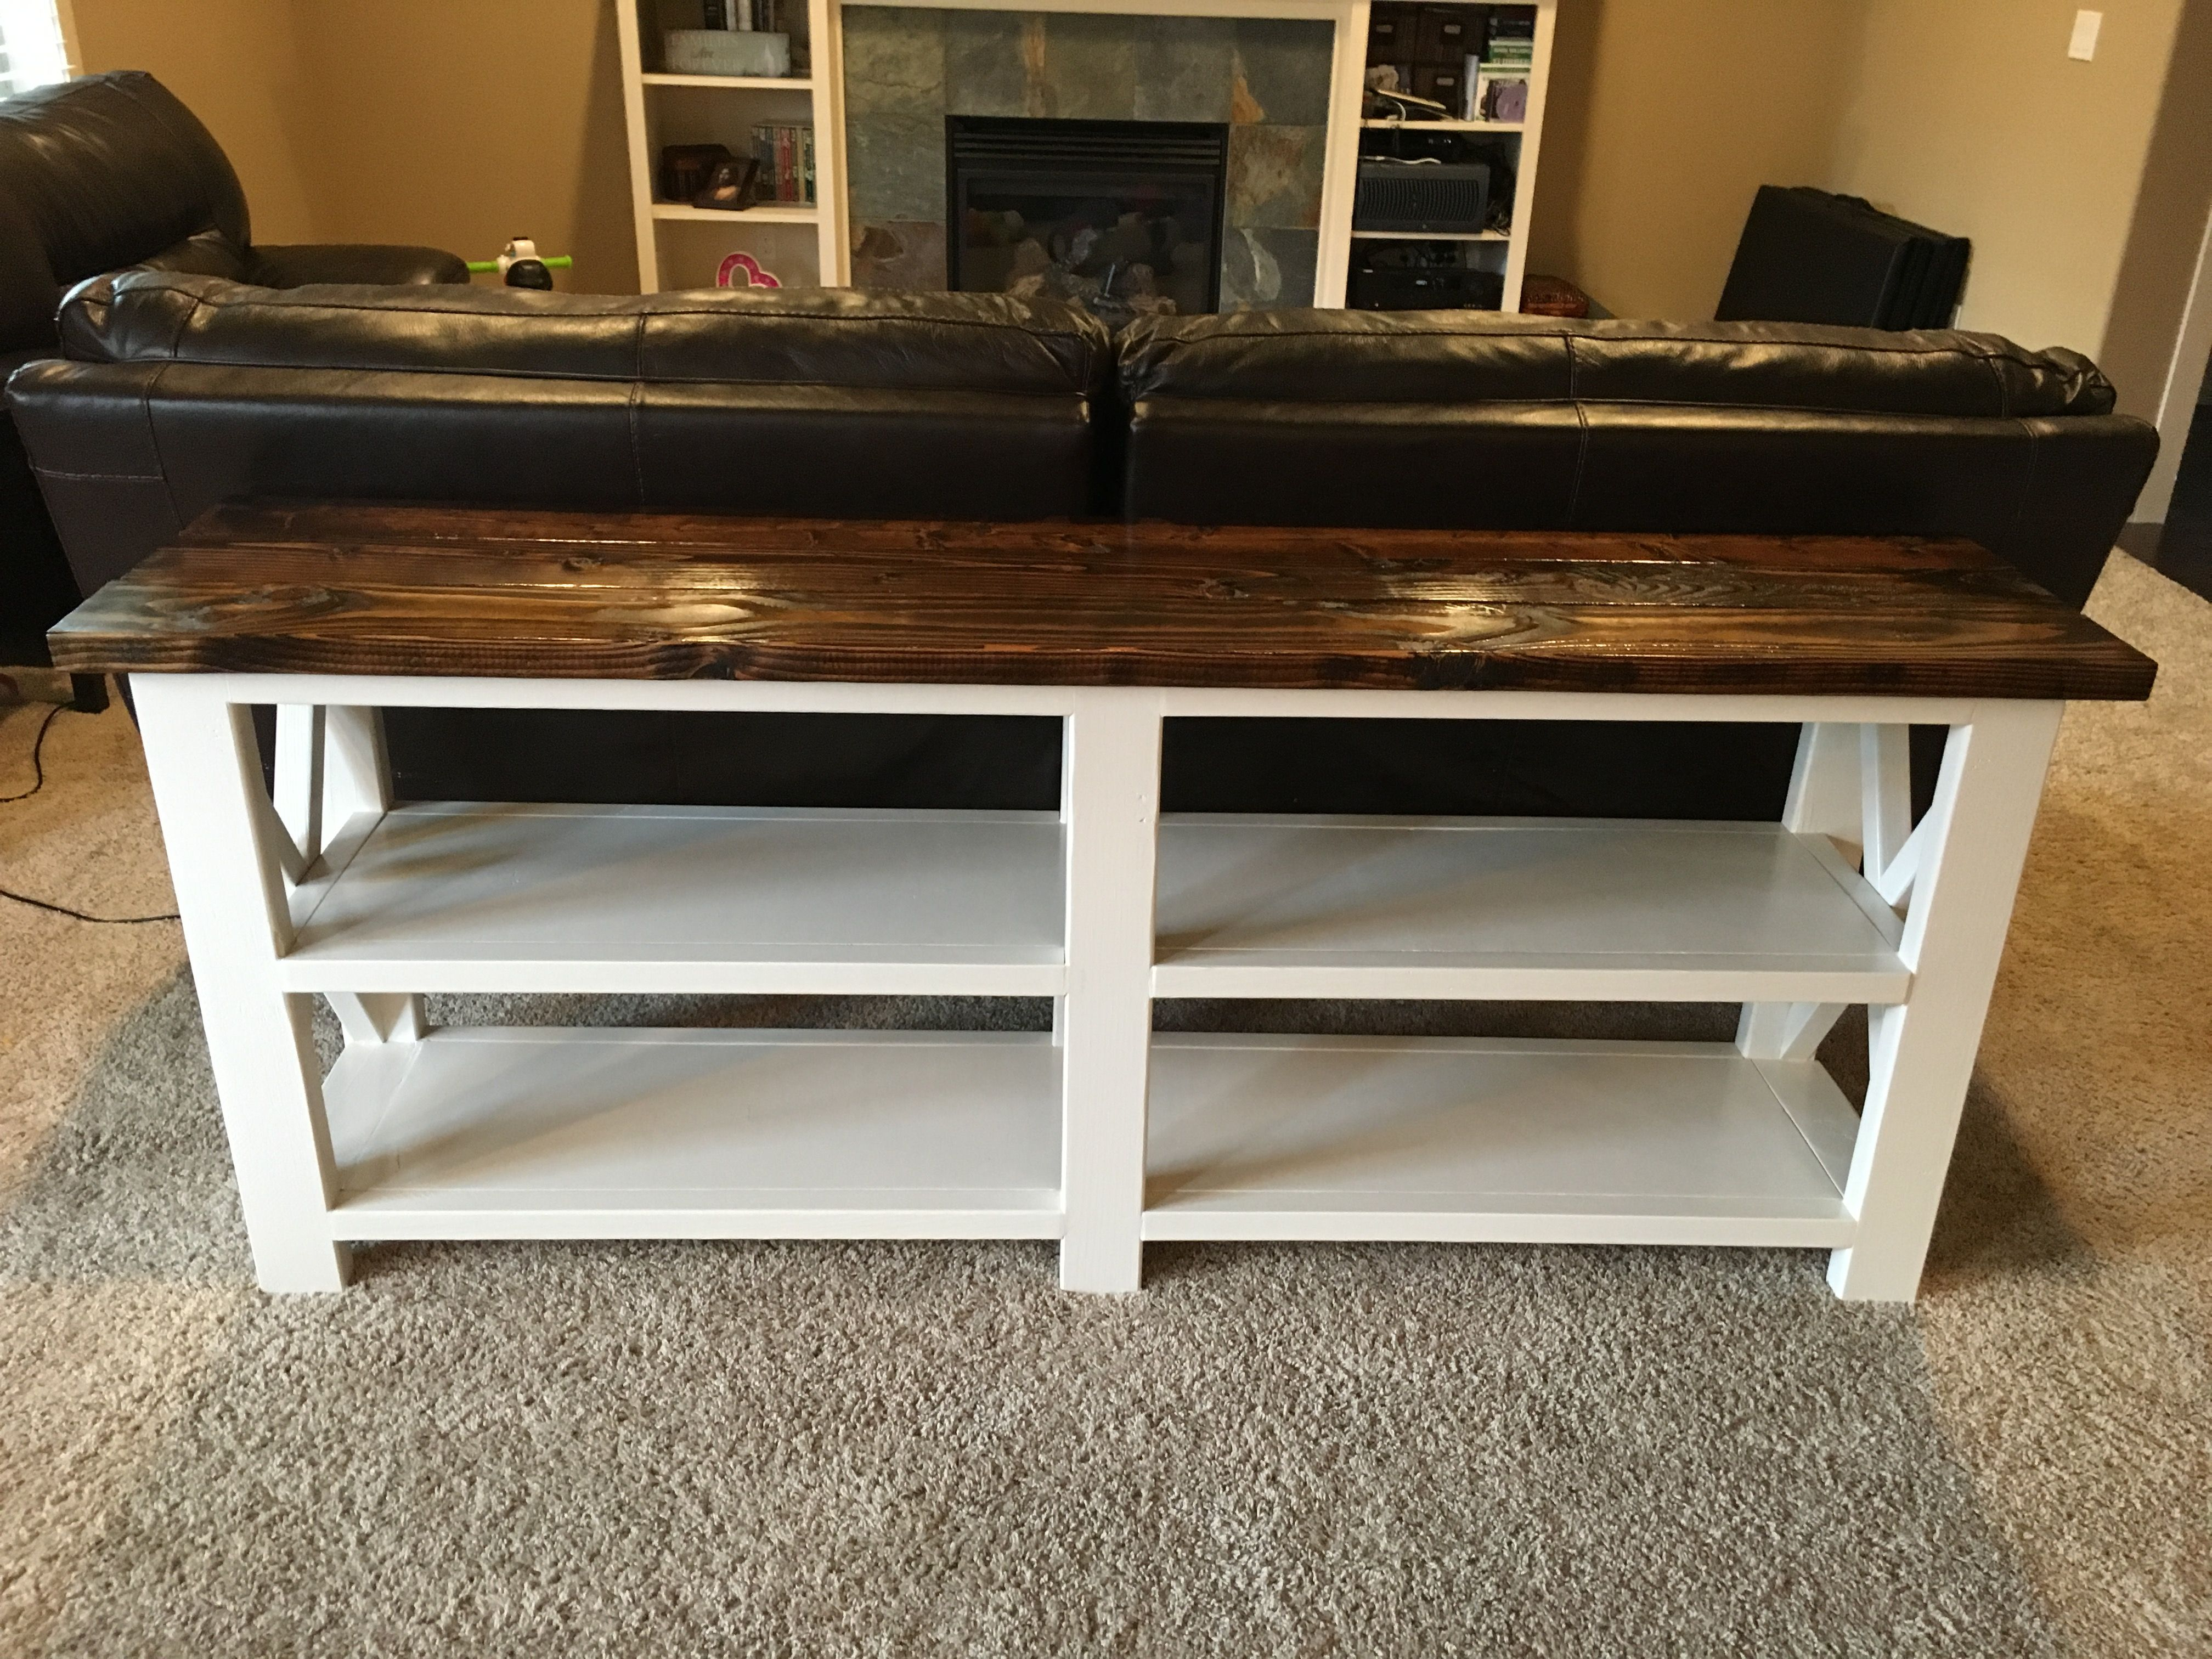 Ana White X Console Sofa Table Diy Projects Entry Table